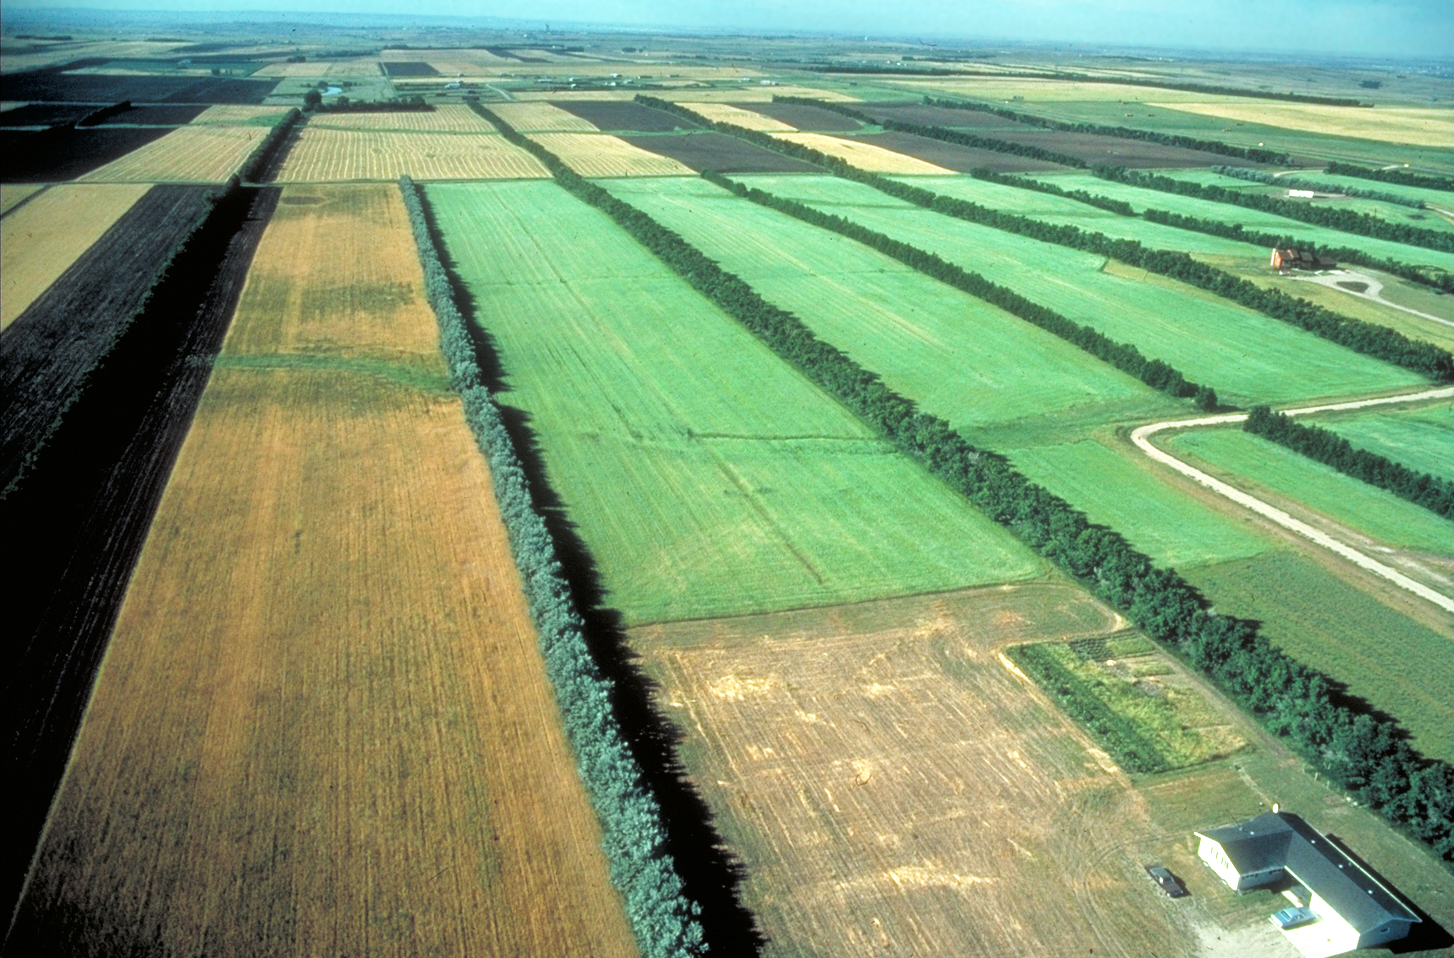 Field windbreak system helps control and manage snow to increase soil moisture. In the 1930s, the Prairie States Forestry Program planted over 18,600 miles of windbreaks in the Great Plains to address soil erosion during the Dust Bowl pe